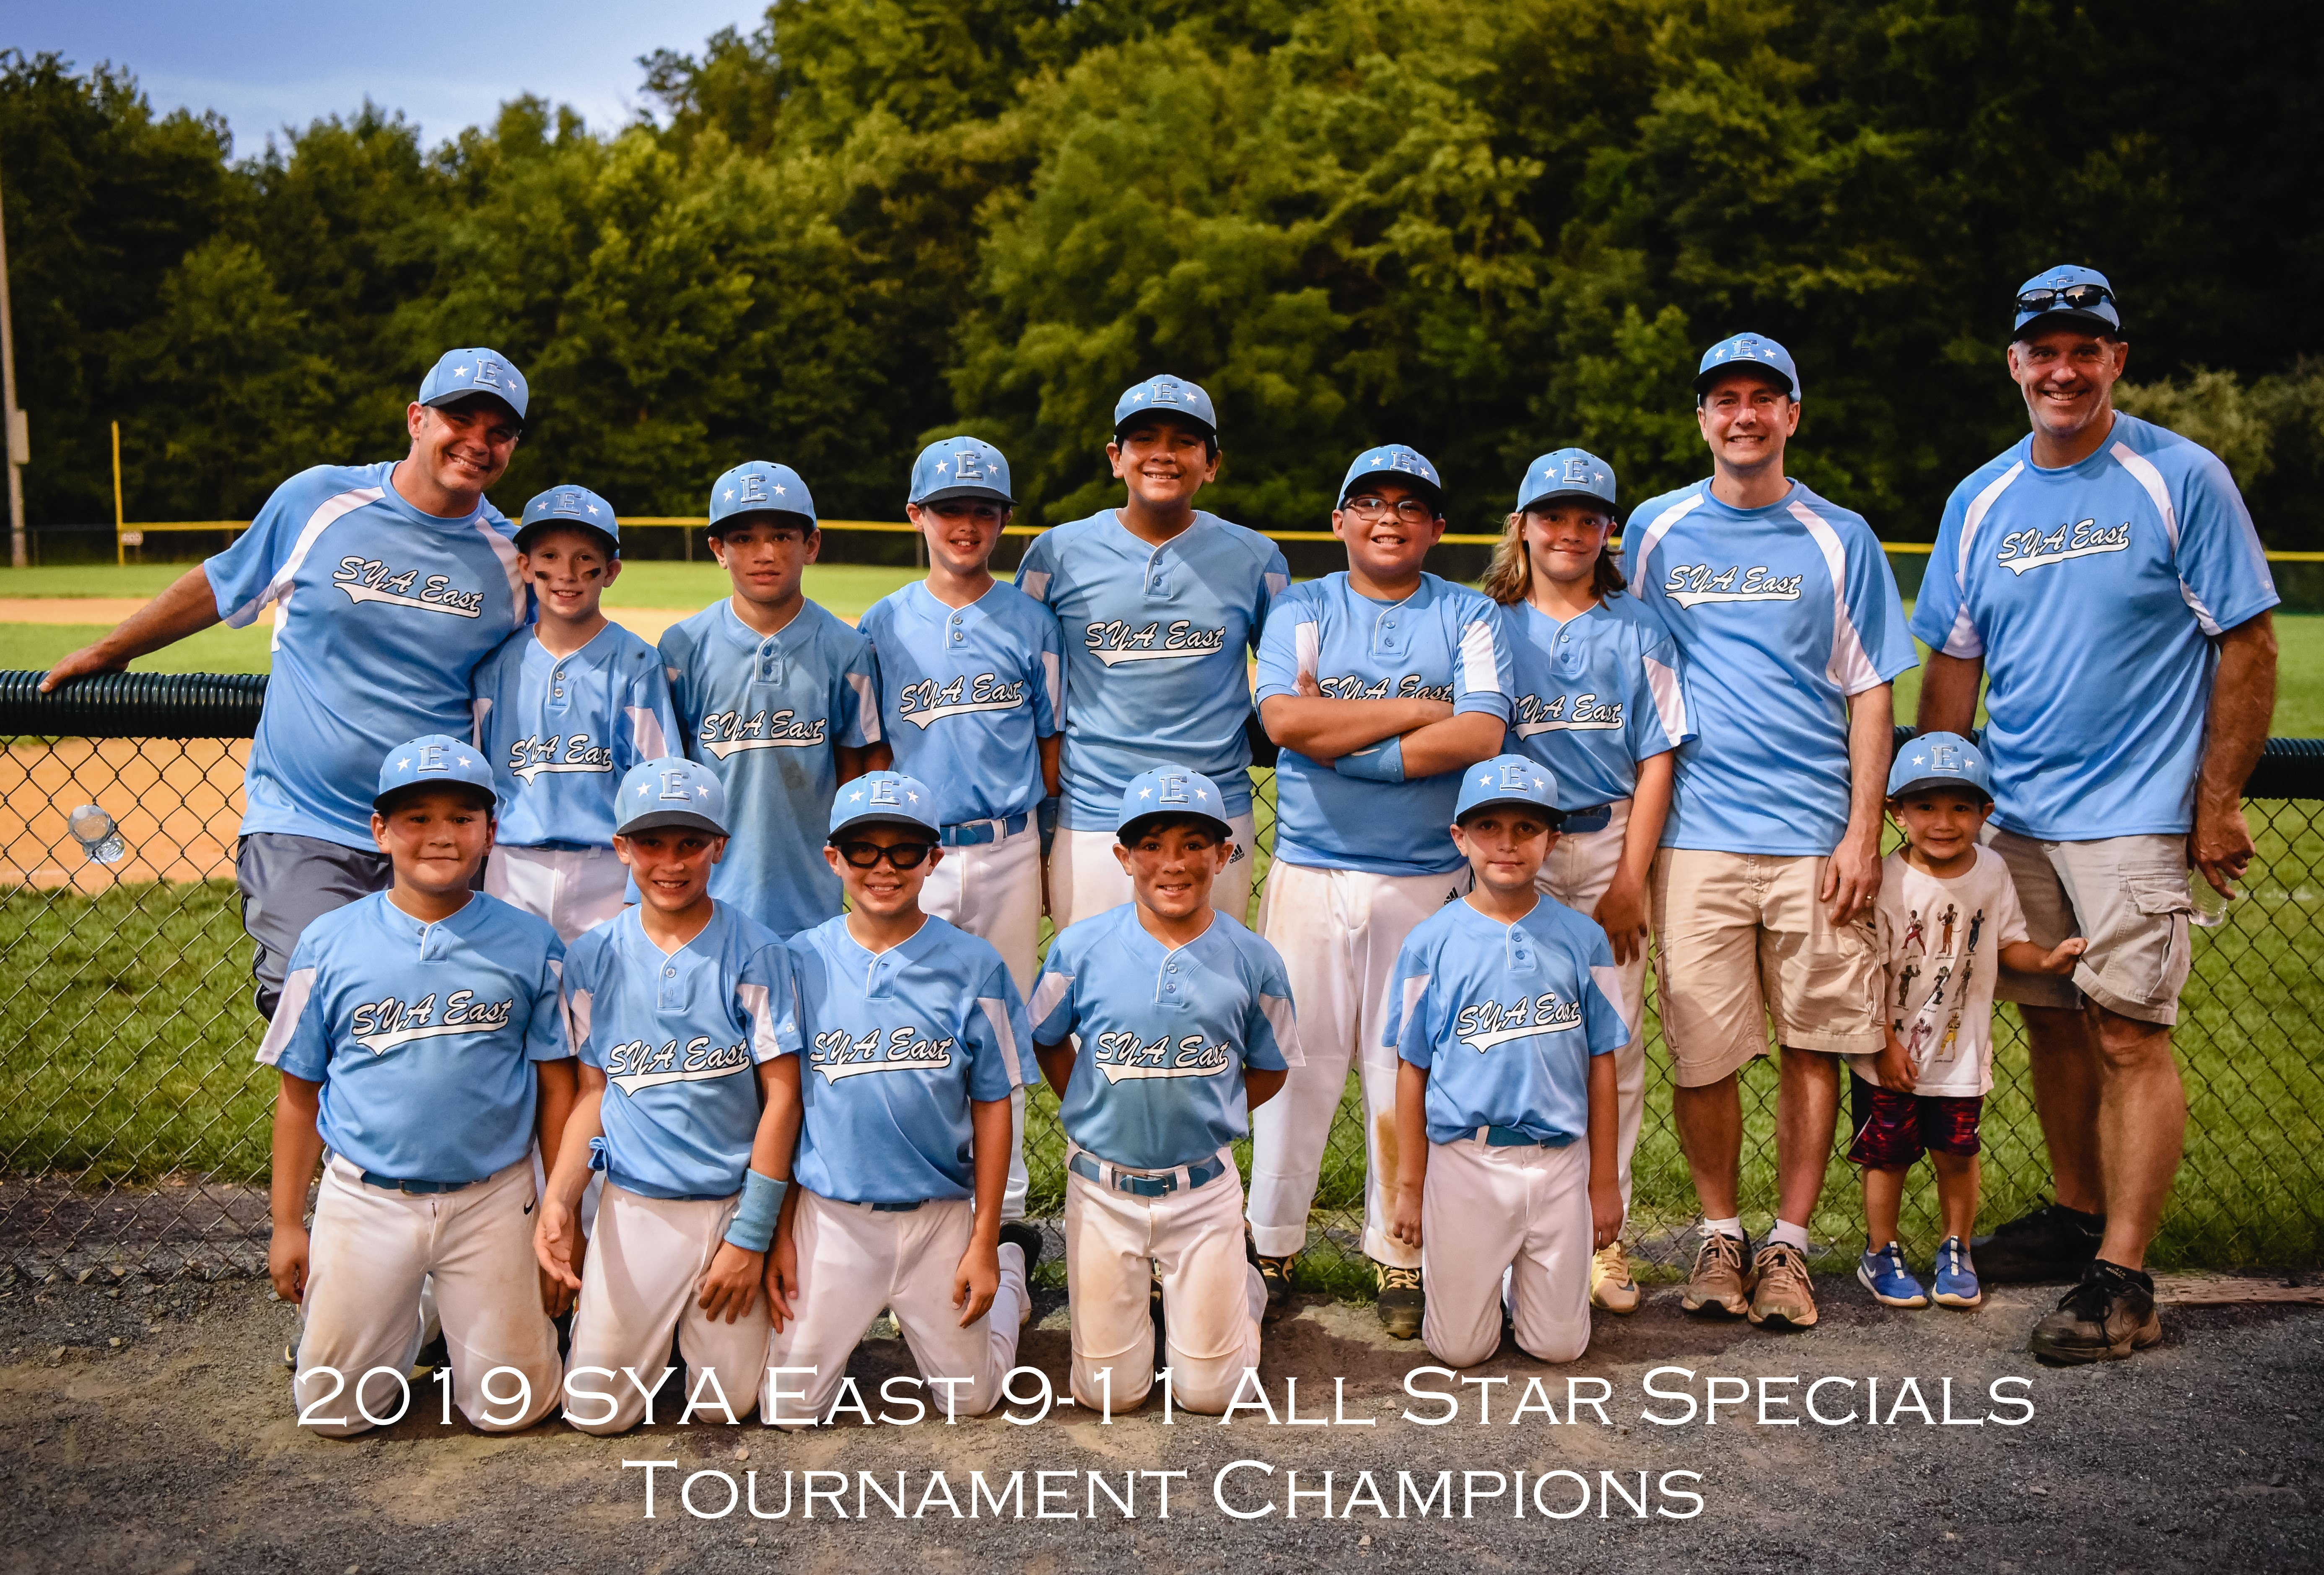 SYA East 9-11 Minors Wins Special Games Tournament